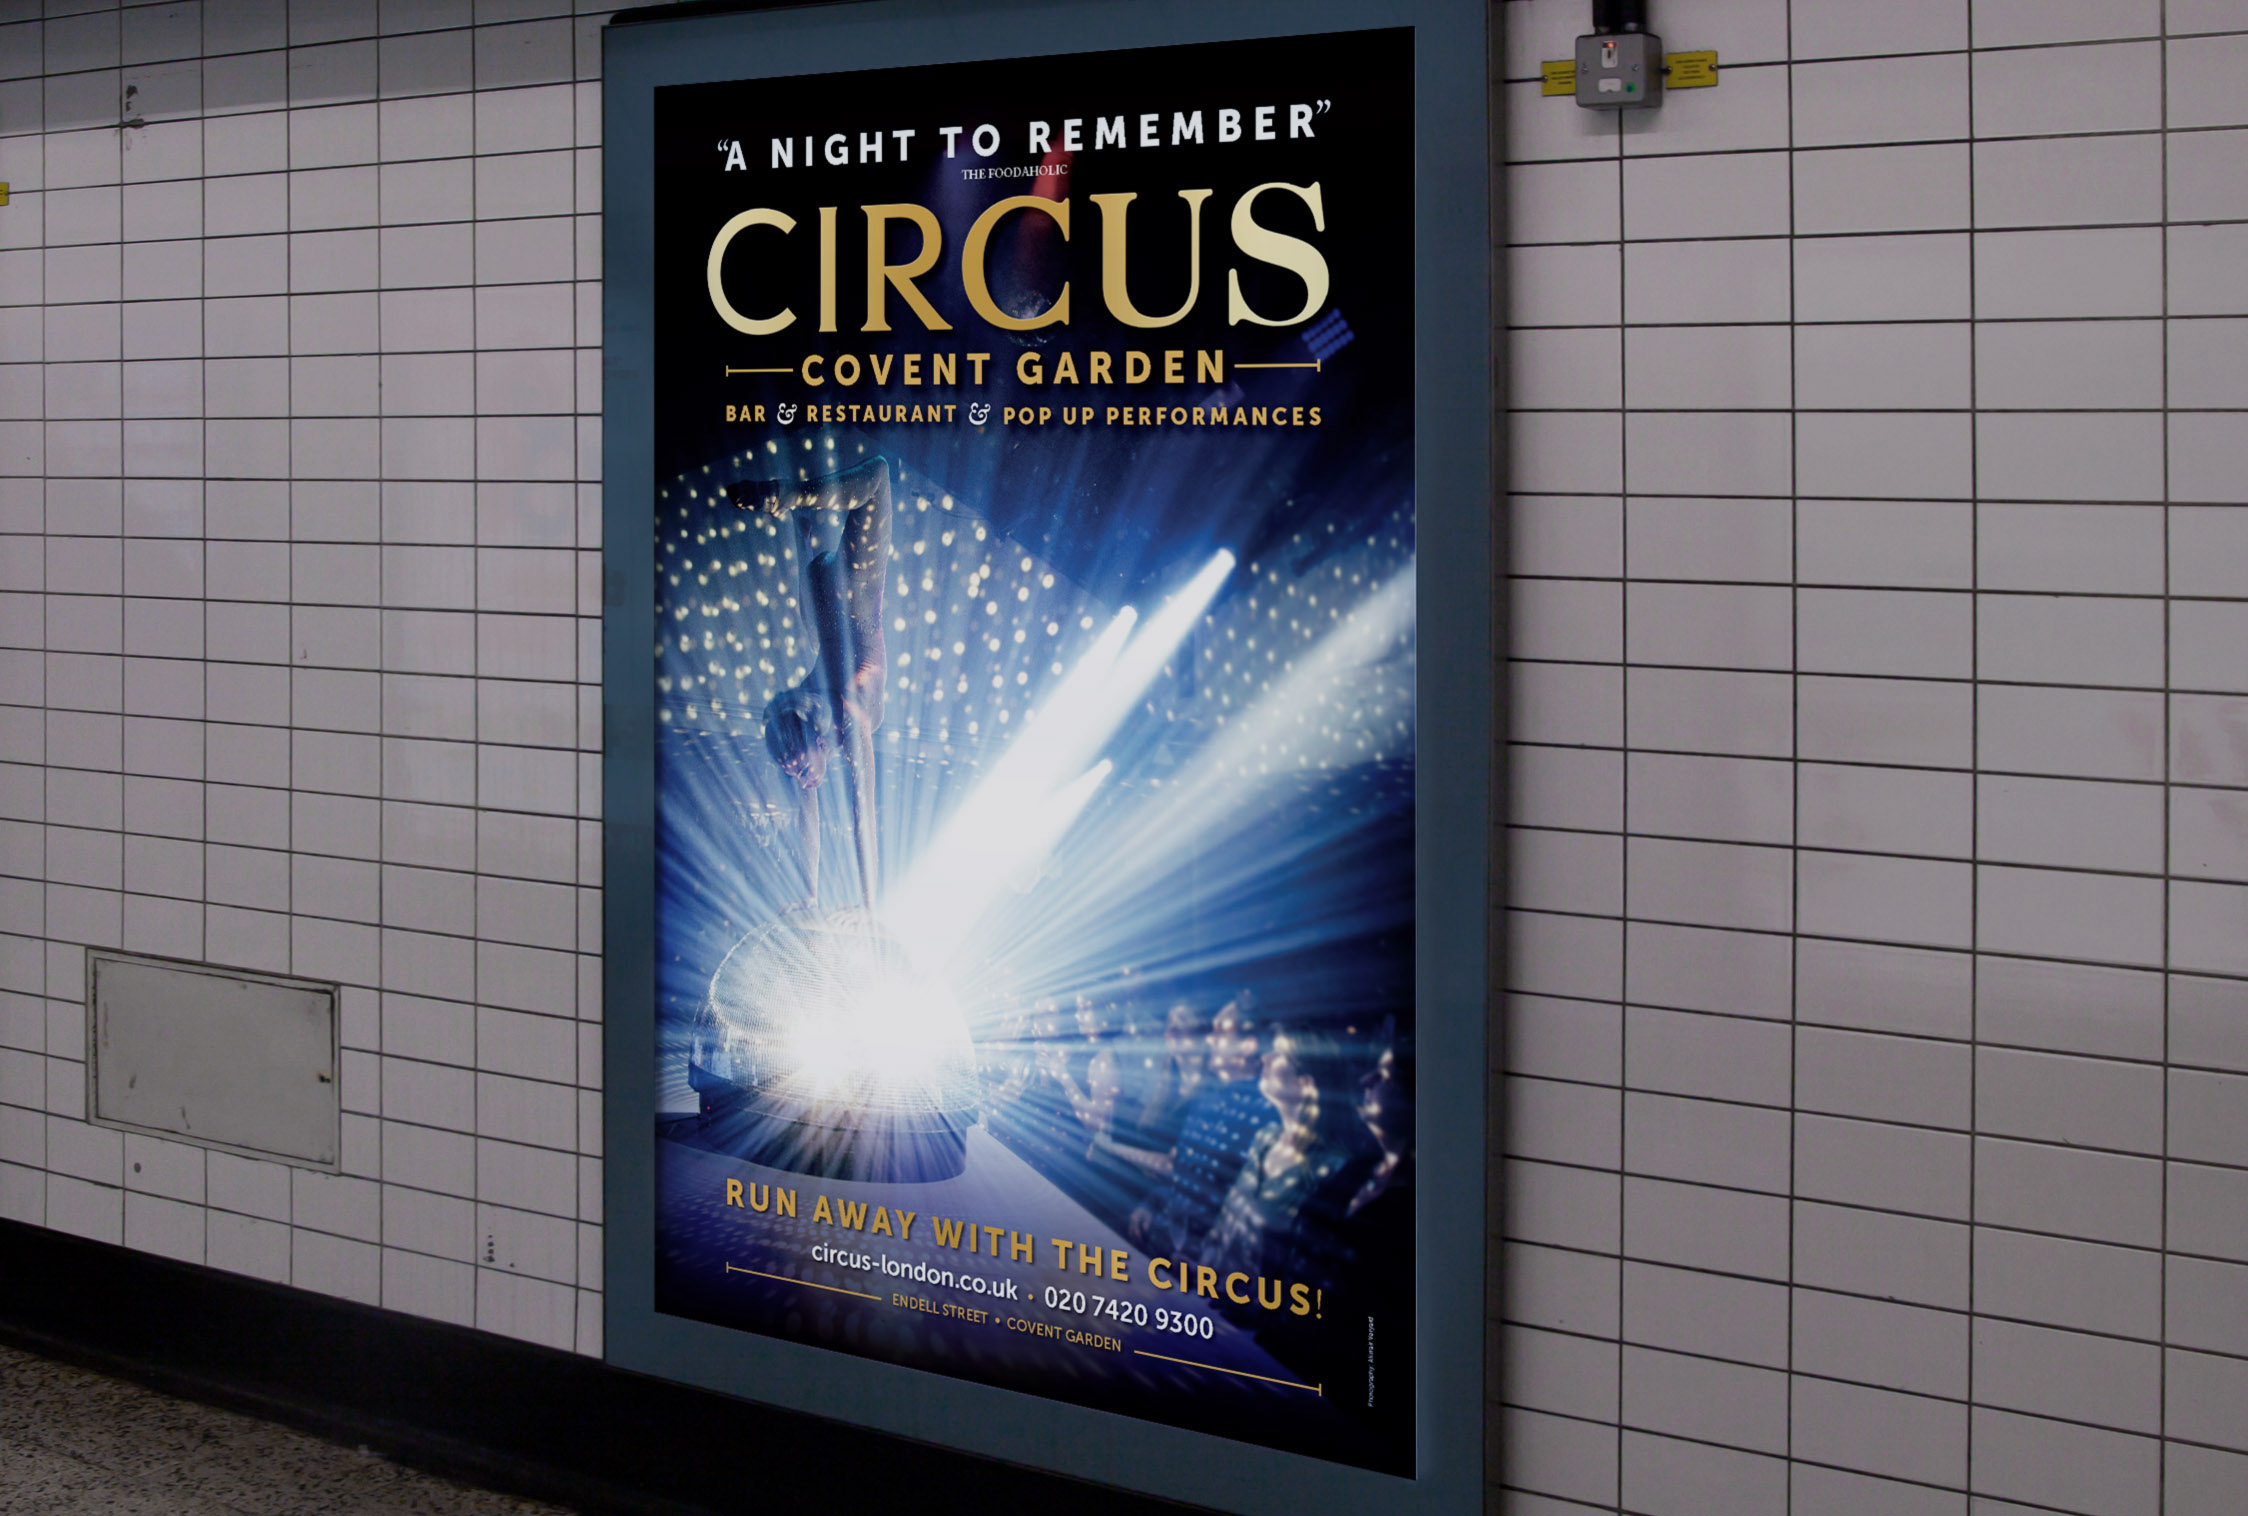 A Circus 4 sheet poster in London's Underground